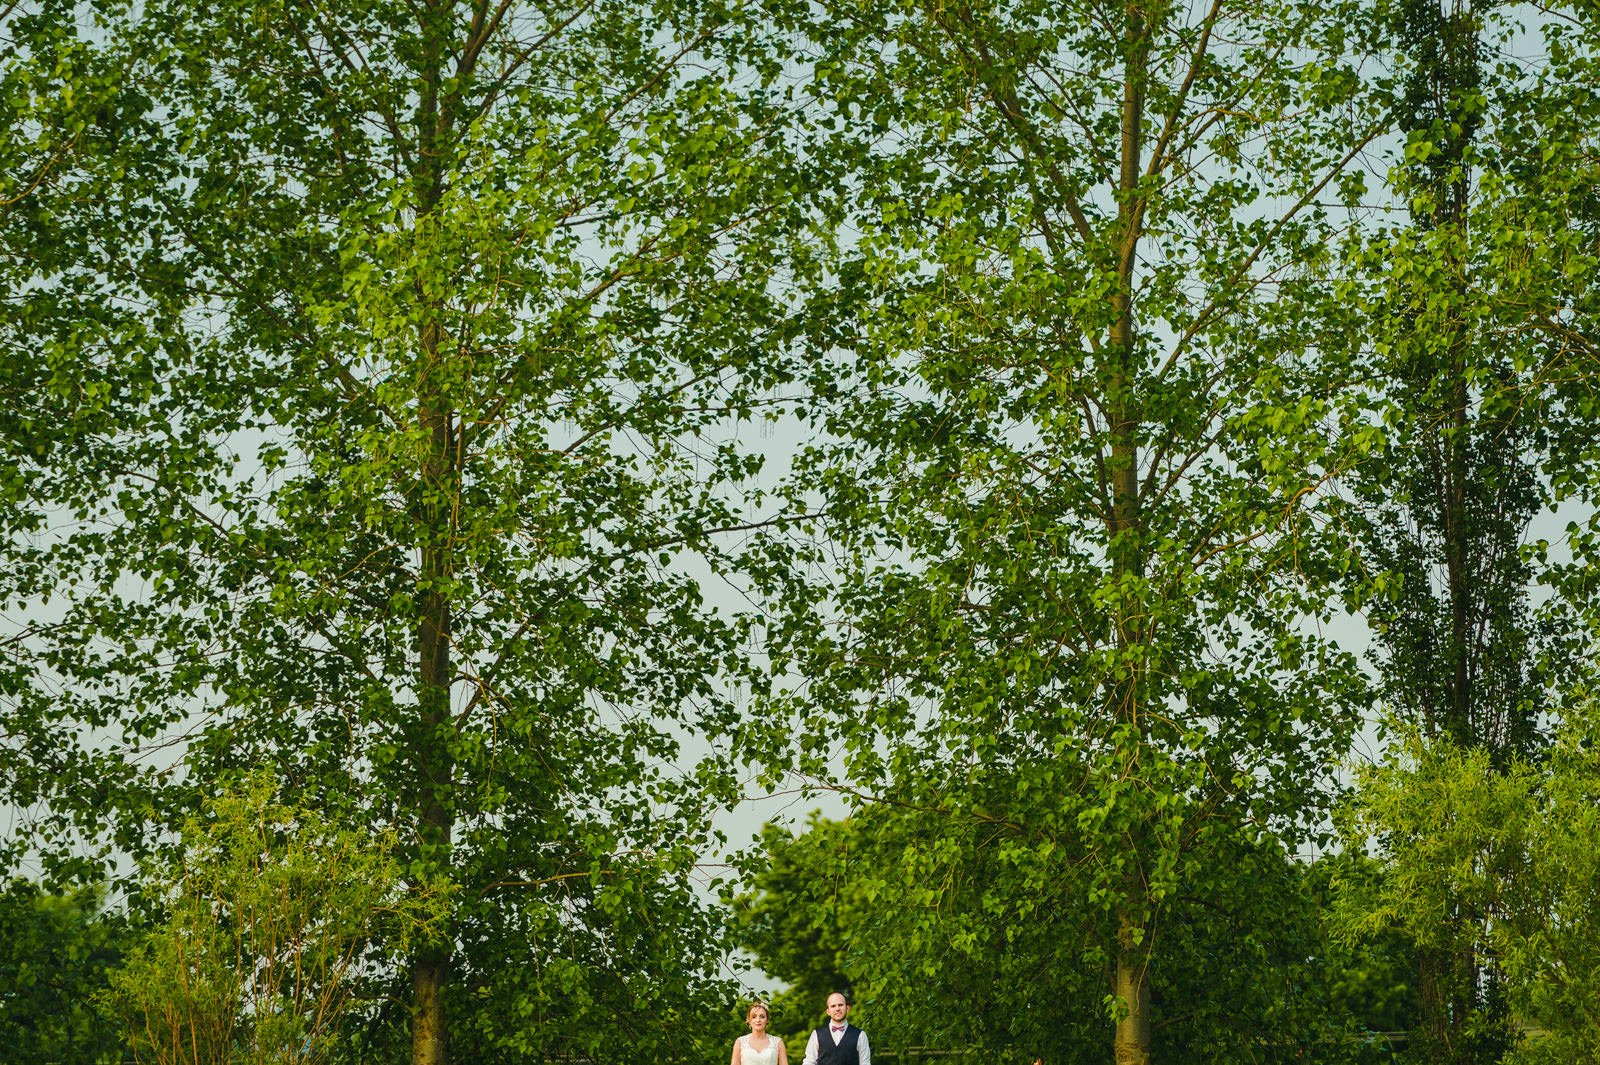 millers of netley wedding 103 - Millers Of Netley wedding, Dorrington, Shrewsbury | Emma + Ben